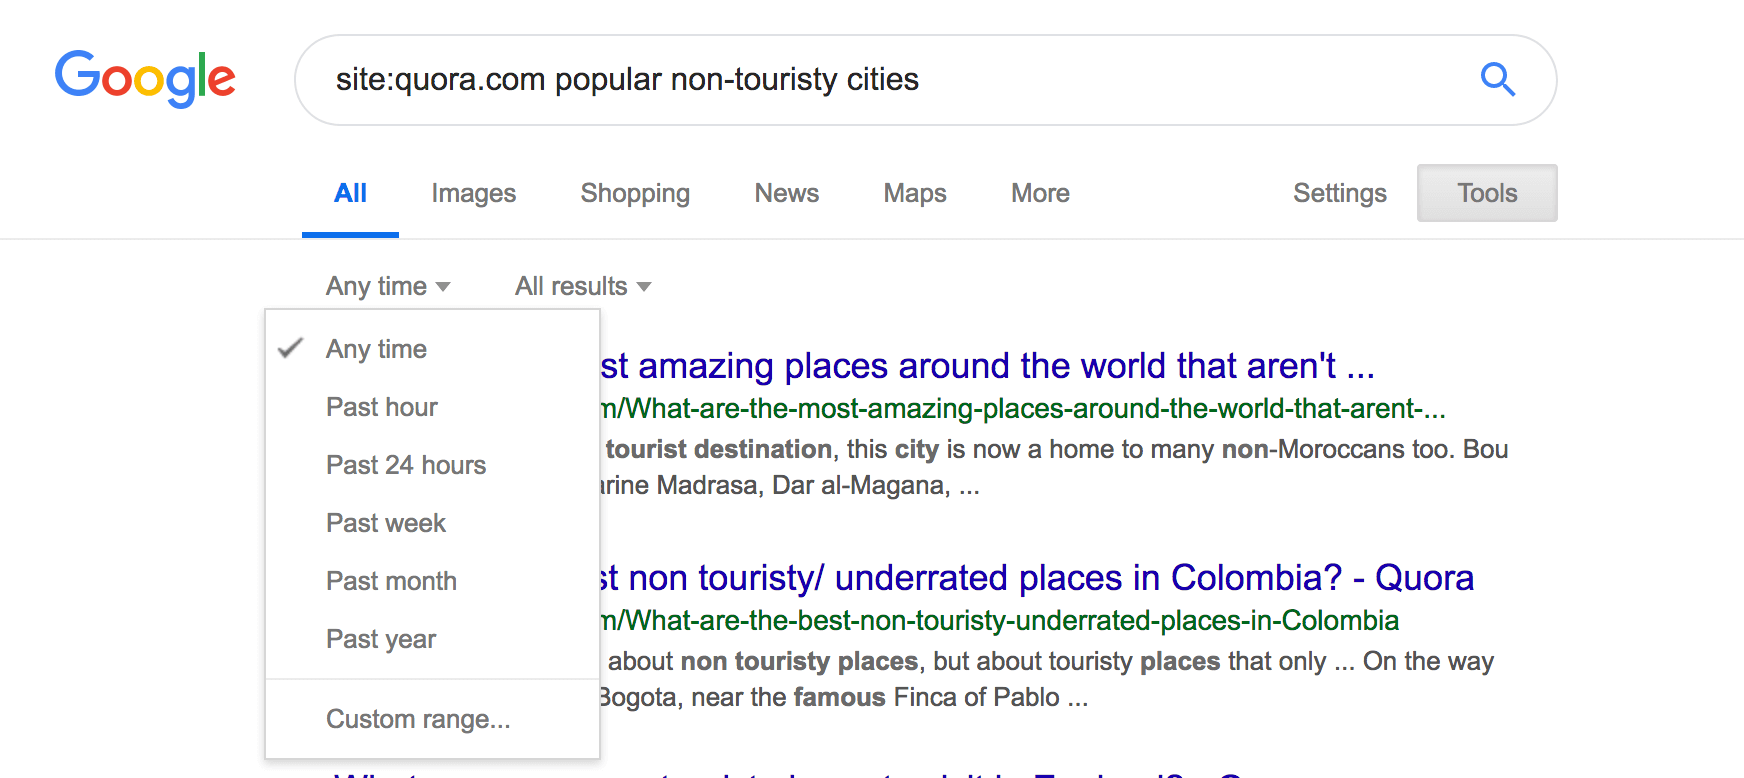 google search results page with time filter option